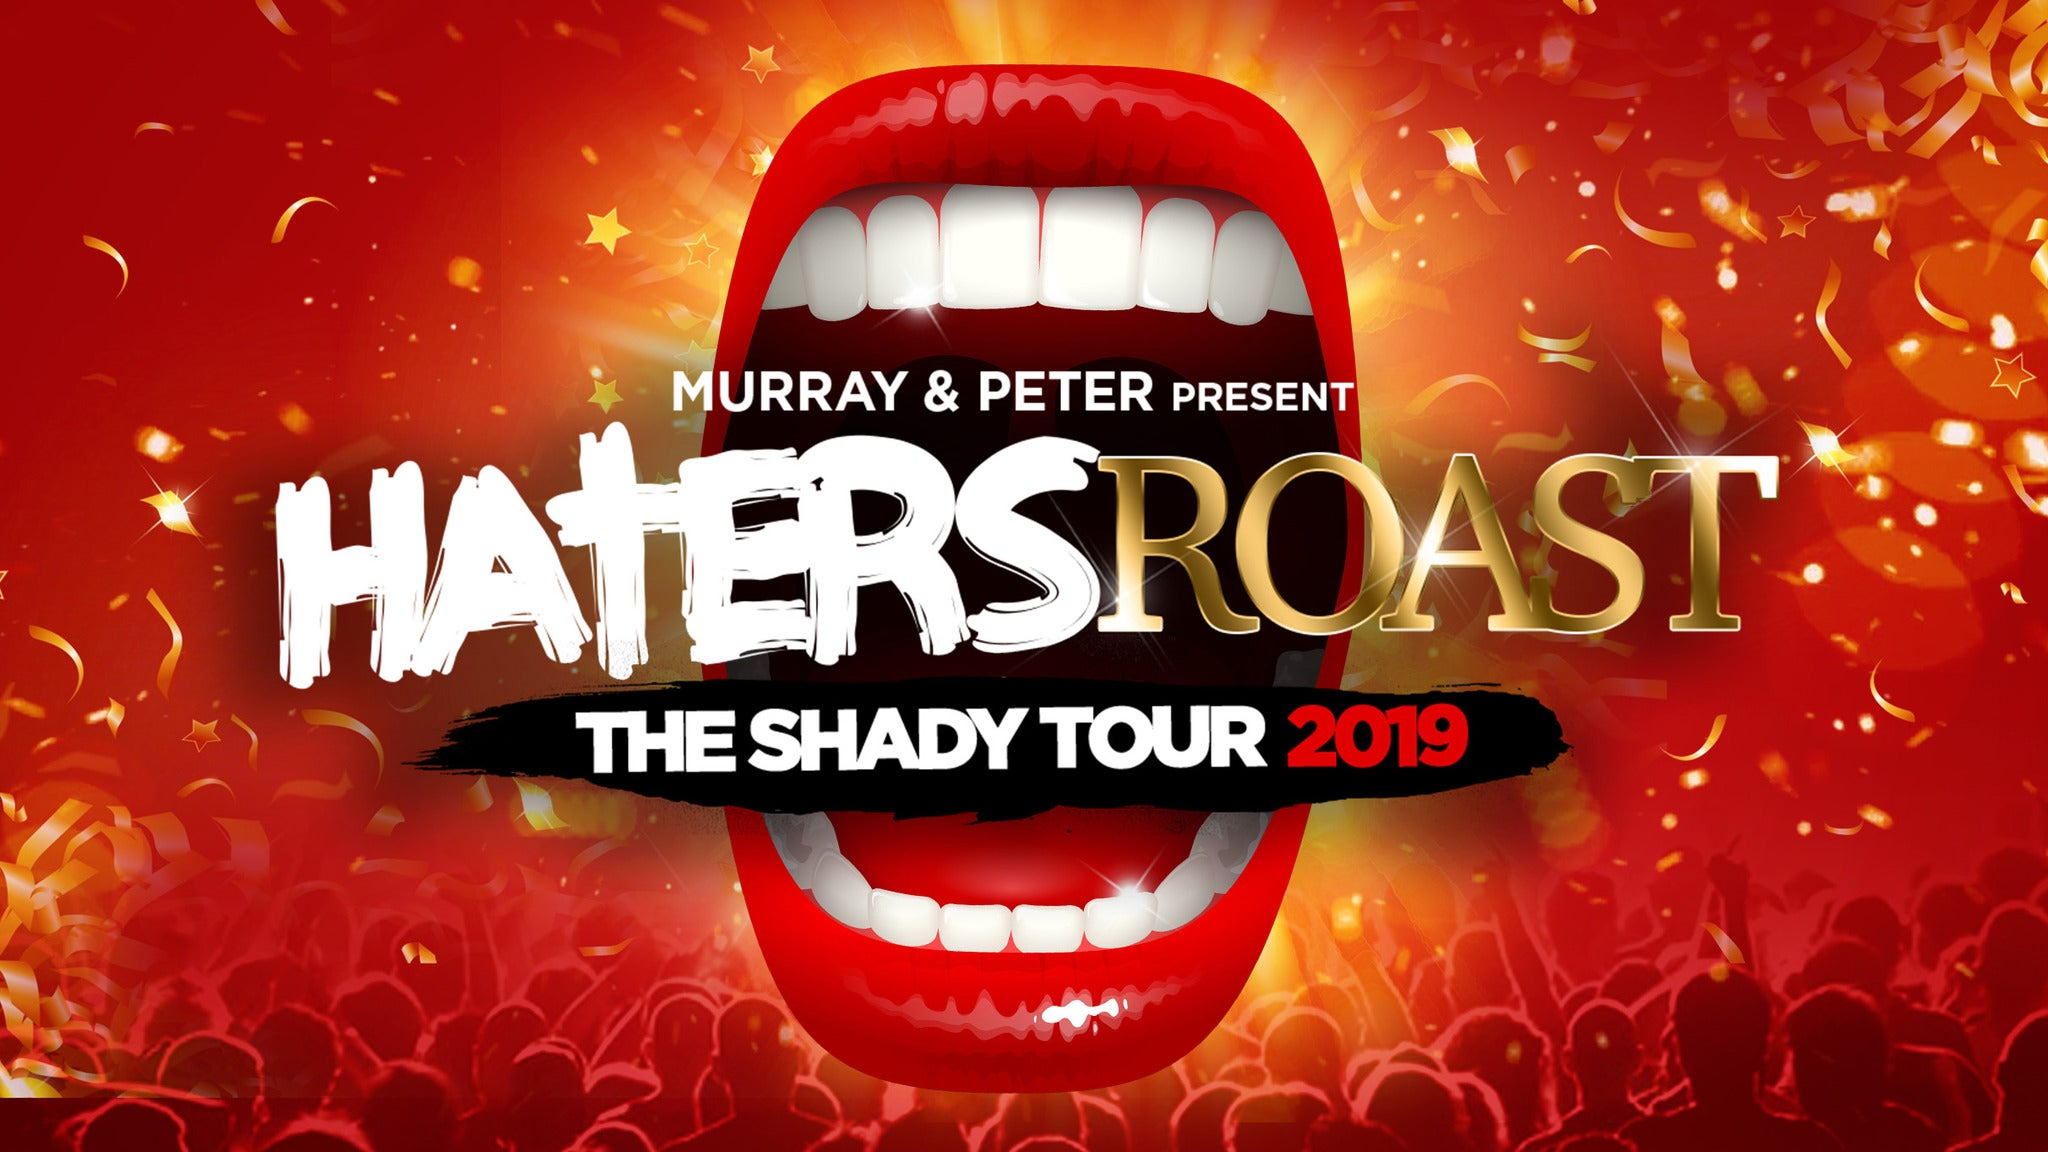 Haters Roast The Shady Tour